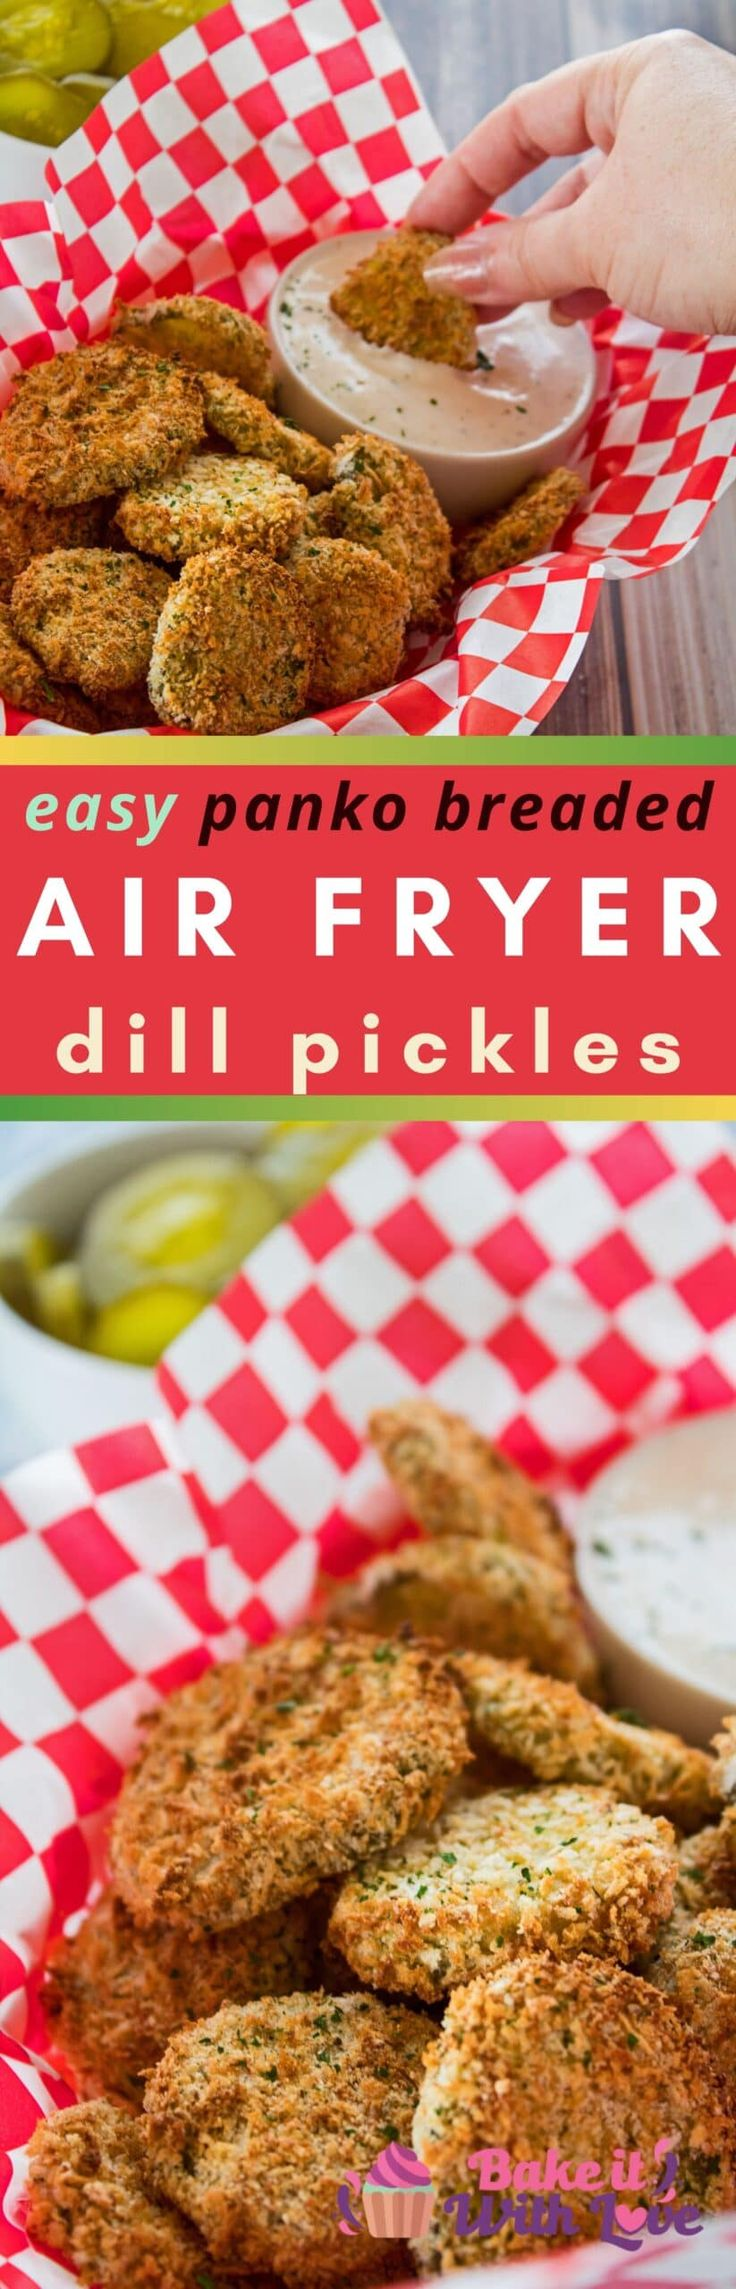 Jun 20, 2020 – Fantastically crispy Air Fryer Pickles are a delicious and healthier way to enjoy this popular fried dill…